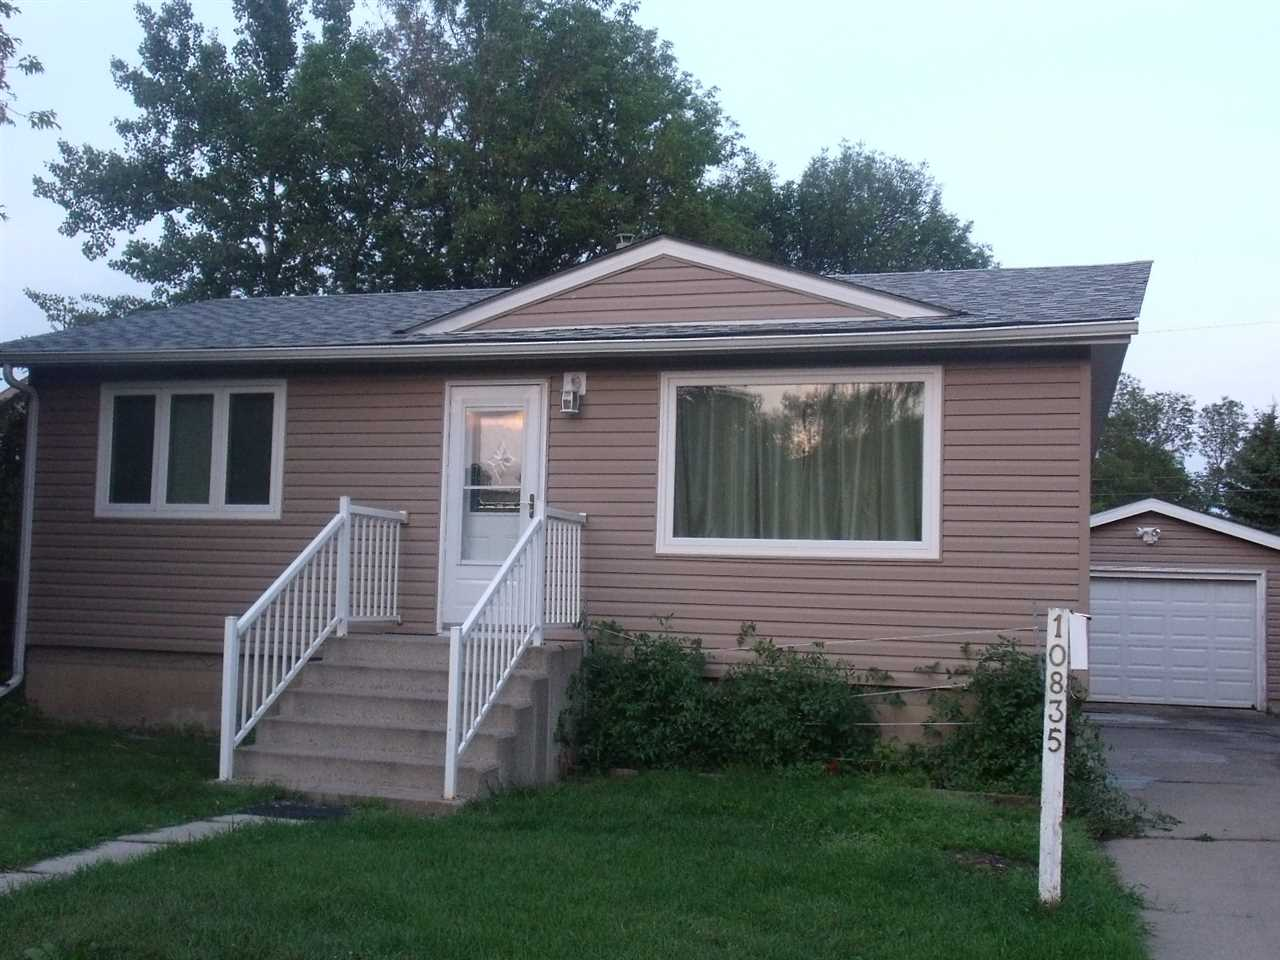 """Come see this cozy 2+2 bedroom, 2 bathroom bungalow on a huge lot in the mature West End neighbourhood of High Park, completely professionally upgraded & move-in ready. Quality upgrades include new shingles (2017), siding on house & garage w/2"""" styrofoam insulation on house, South foundation waterproofed (2017/18), wiring upgraded to 100 amp service, triple glazed windows throughout, new bathrooms up & down, kitchen & bathroom cabinets & countertops replaced, newer flooring on main, brand new flooring in basement, newer furnace & hot water tank, newer overhead garage door & all exterior doors, plus more!  Enjoy the large 50' X 118' fenced yard w/ample room for RV parking. Home is conveniently located close to schools, shopping, transportation, recreation. Minutes to Yellowhead & Whitemud freeways & West Edmonton Mall. Welcome home - just unpack and enjoy!"""